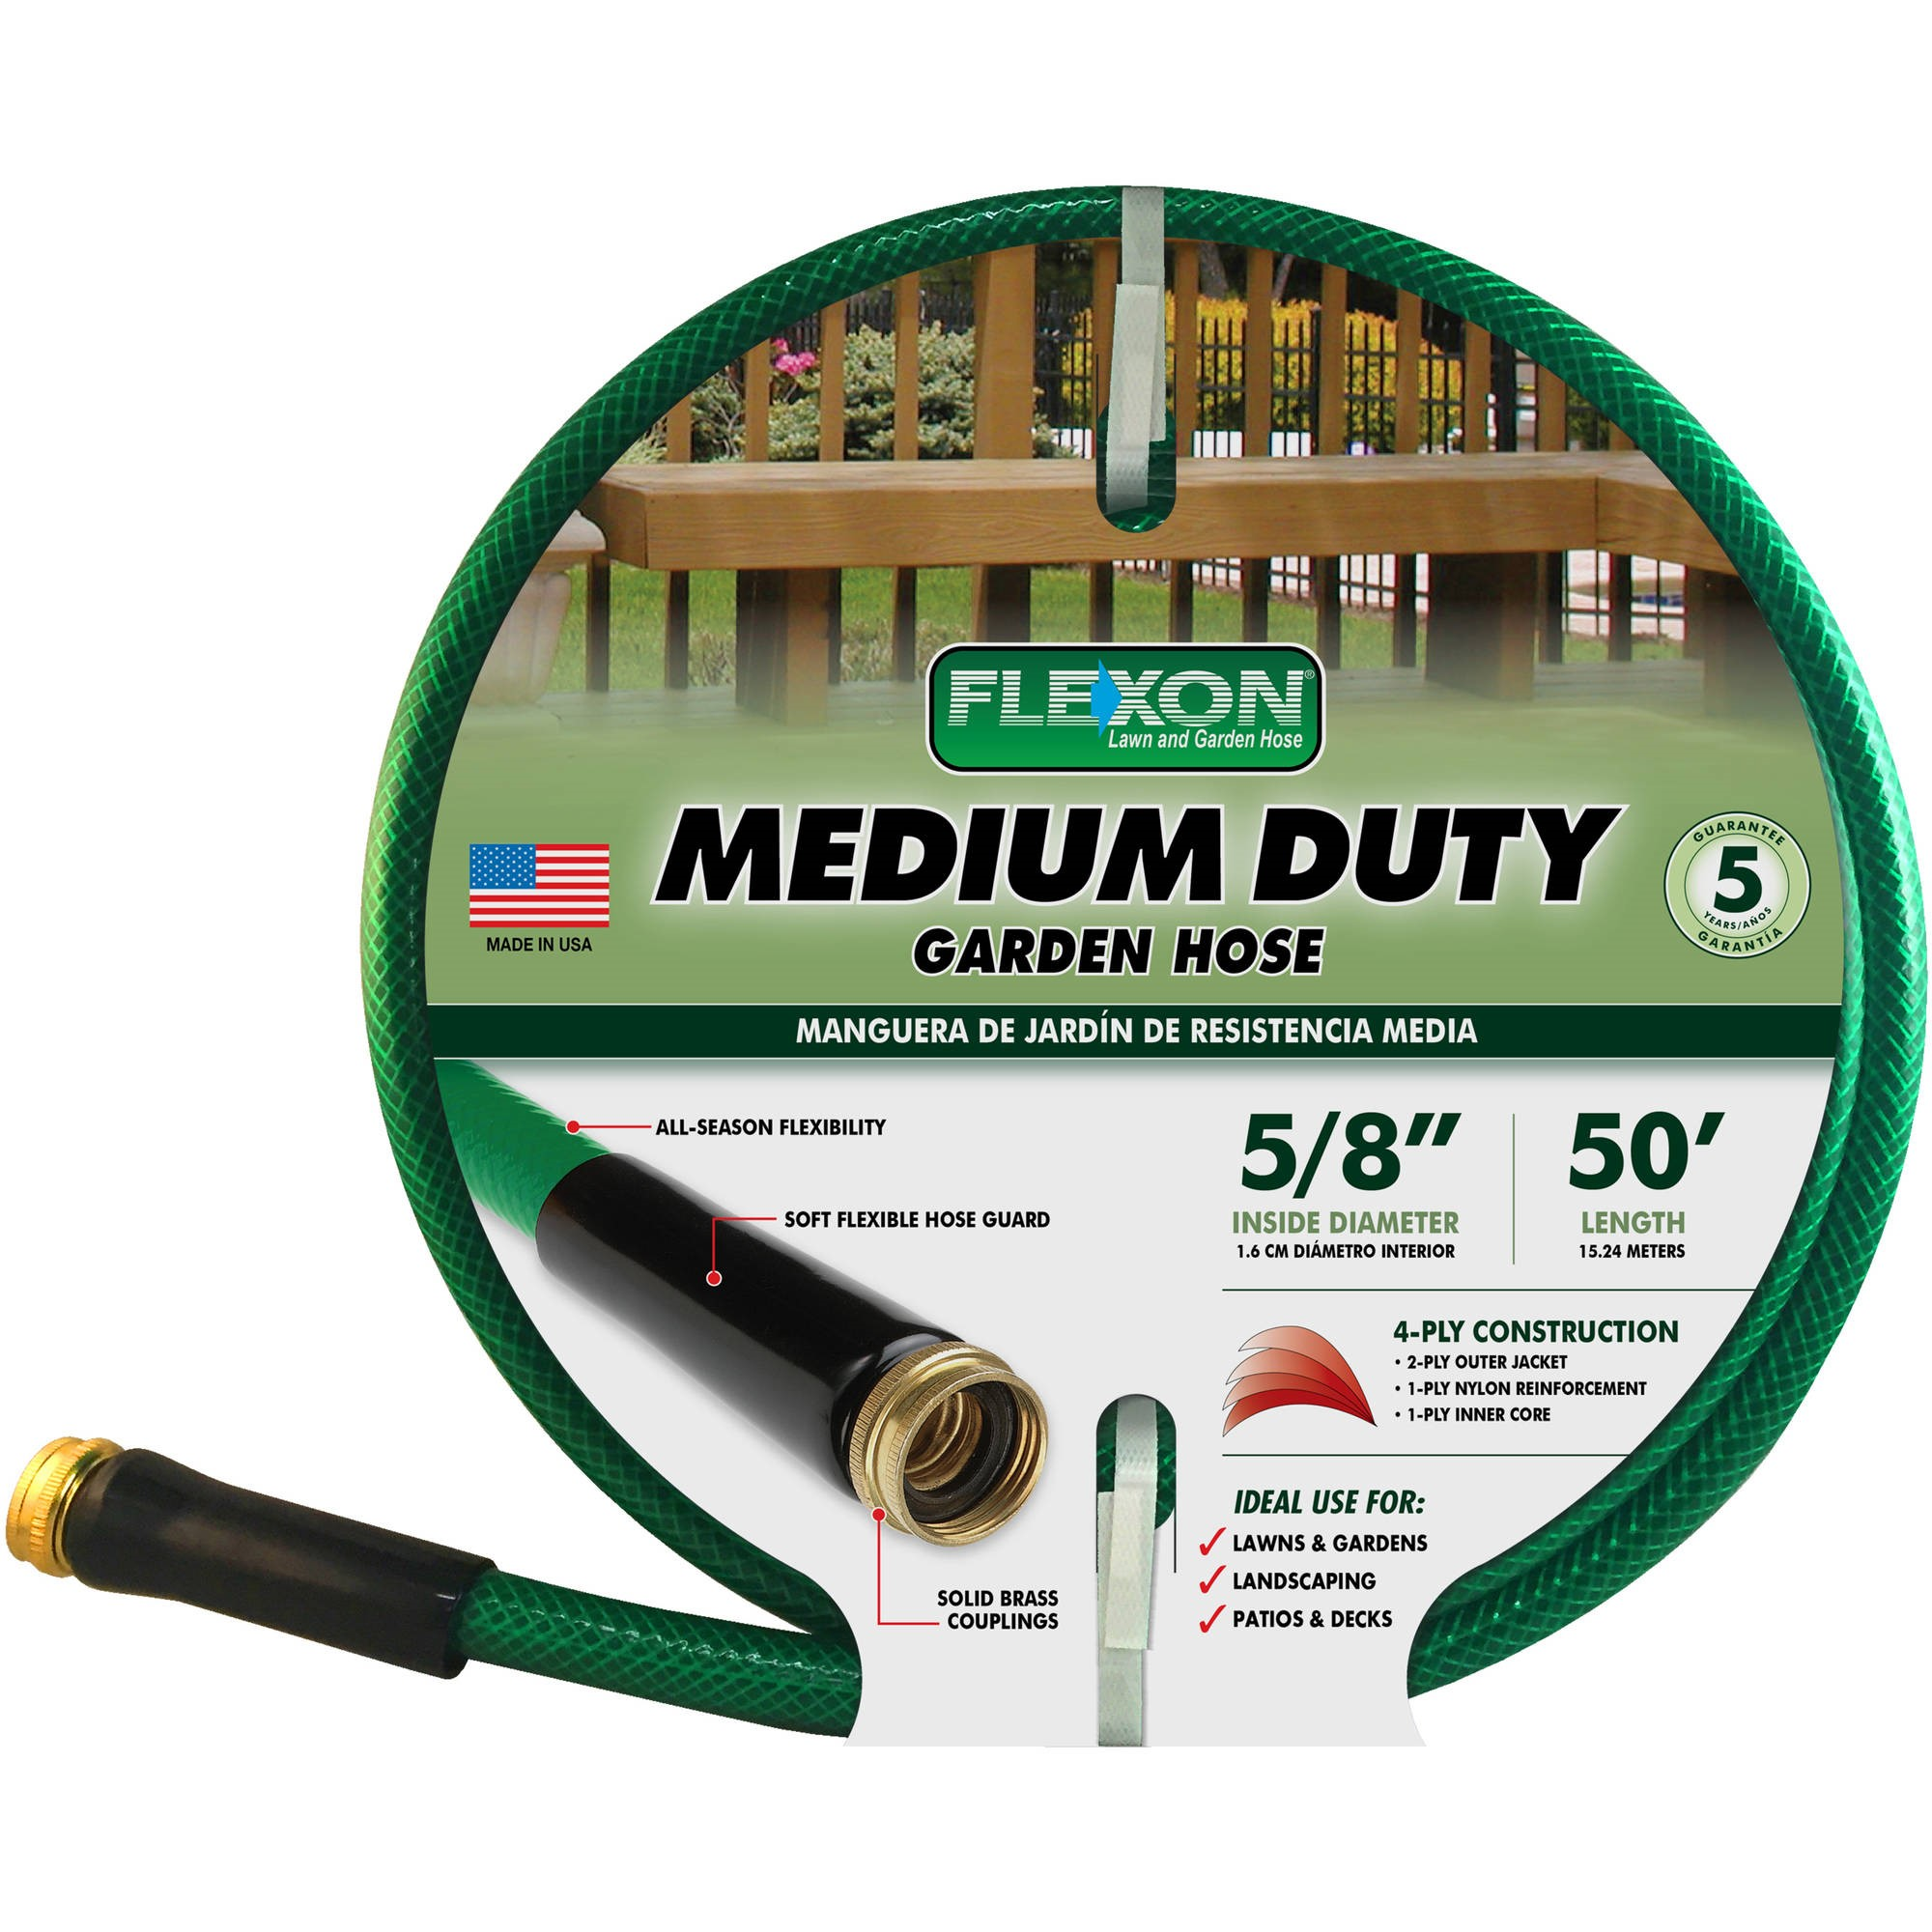 Flexon 50' Medium-Duty Garden Hose, Green